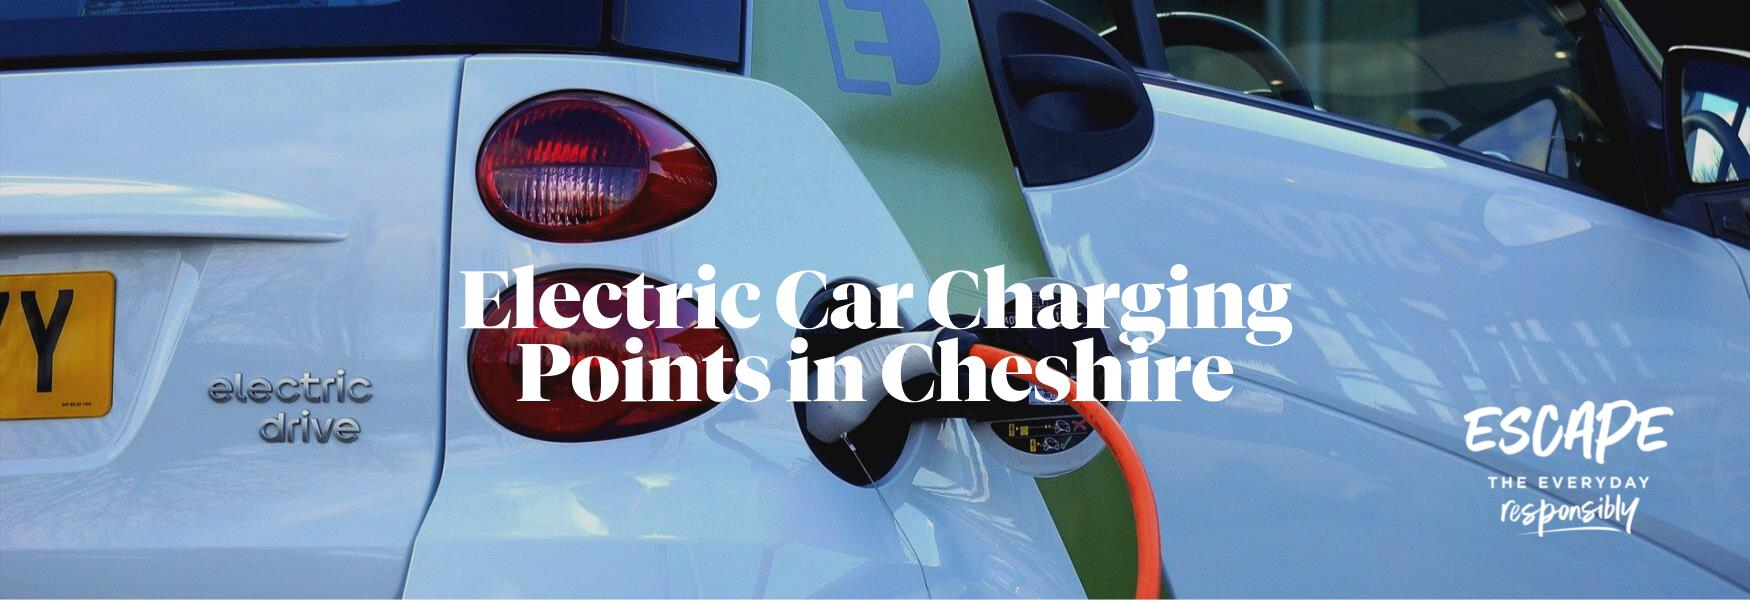 Electric Car Charging Points in Cheshire